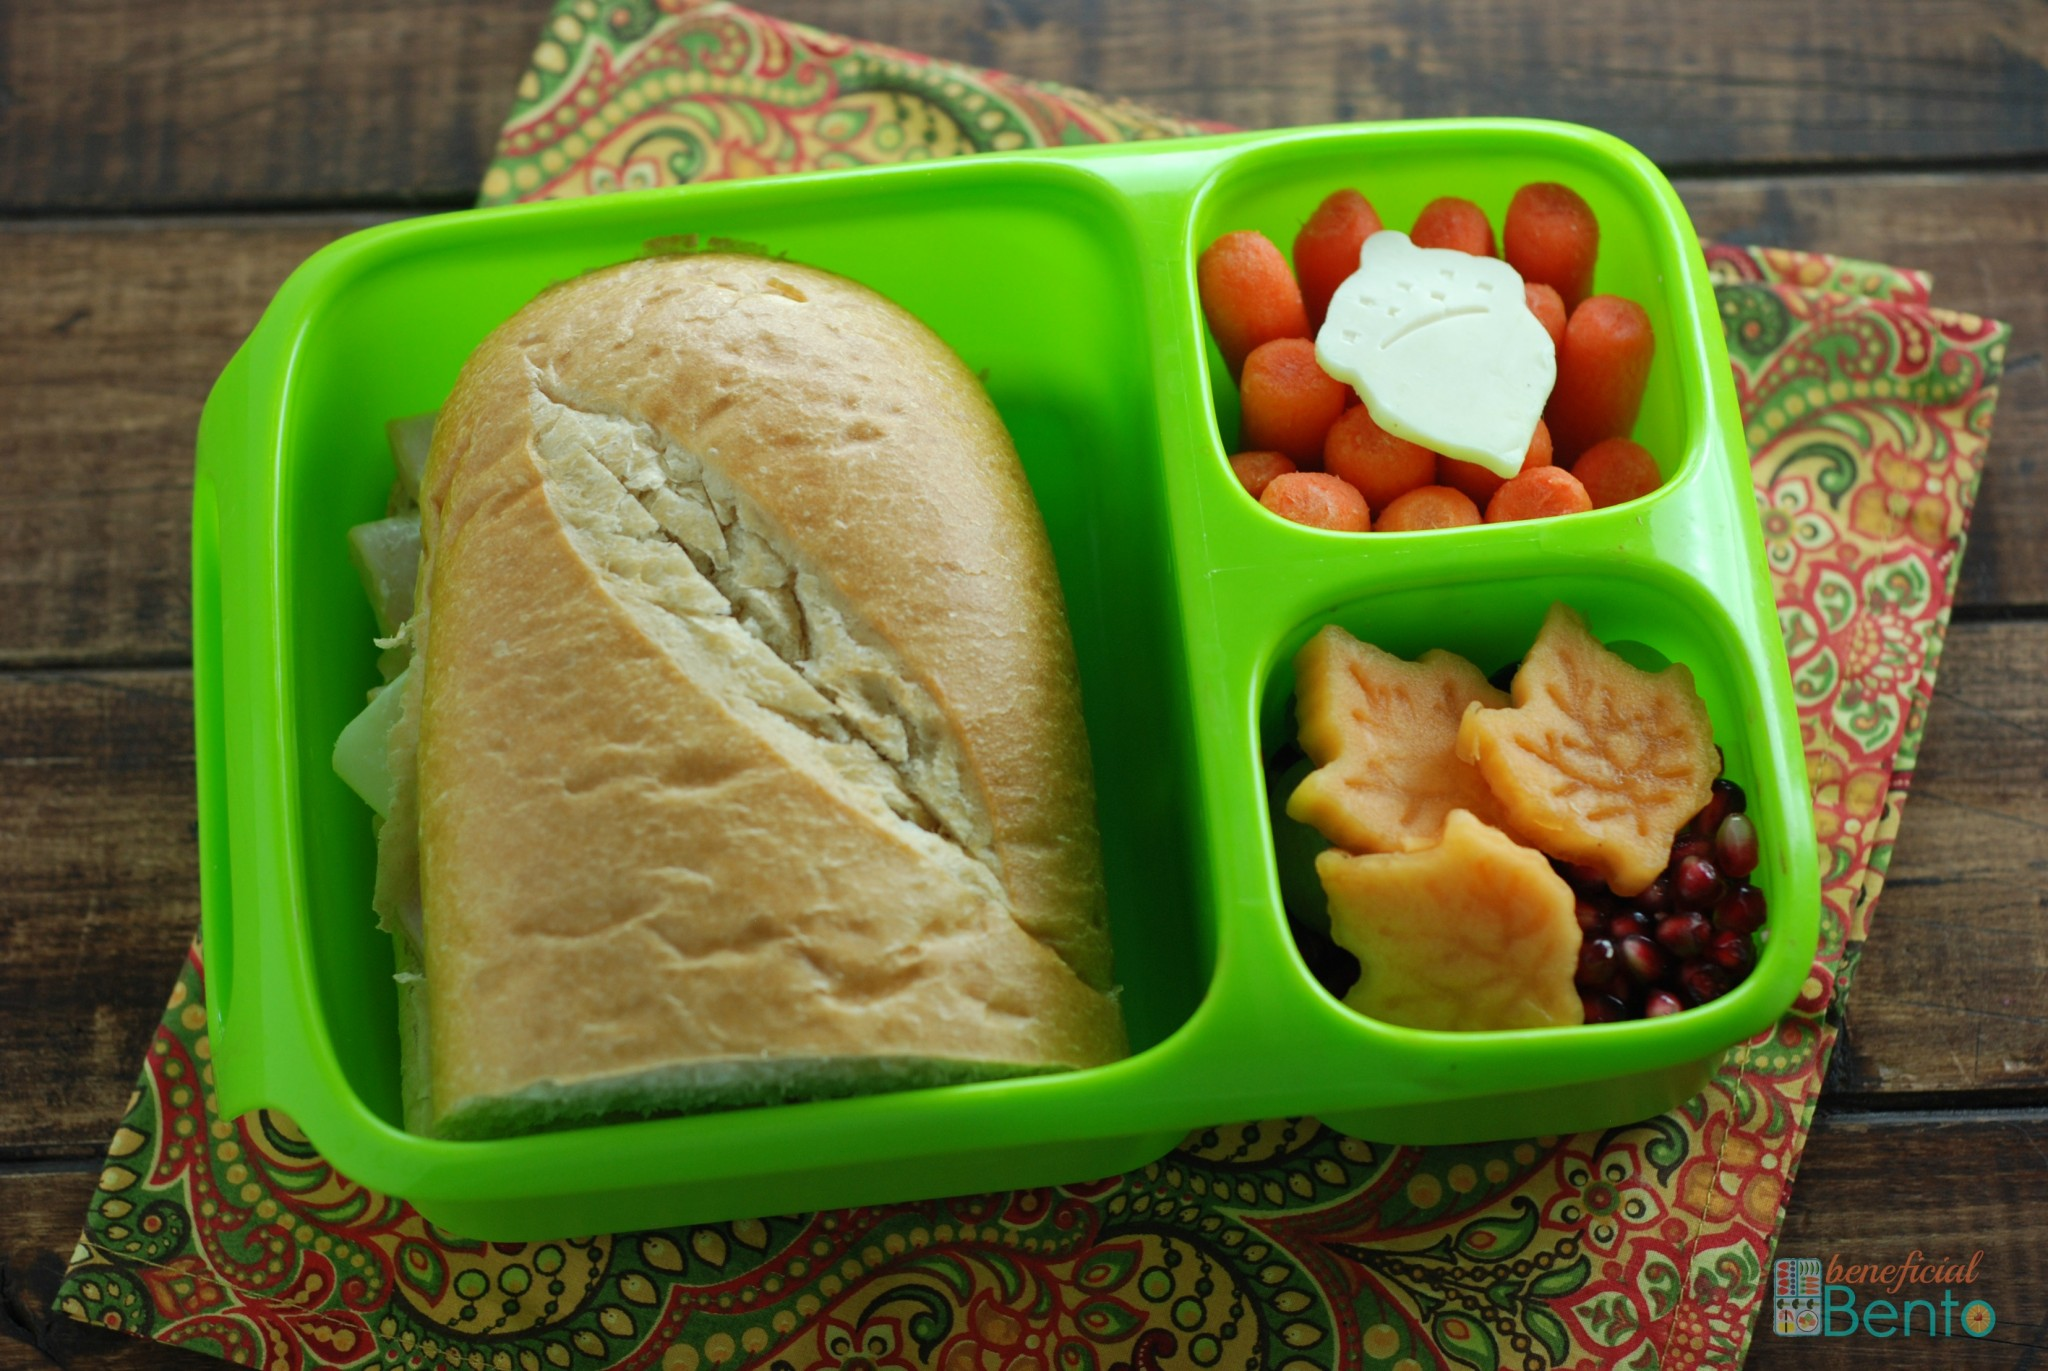 sandwich with leaves and acorns in a Goodbyn Hero lunchbox